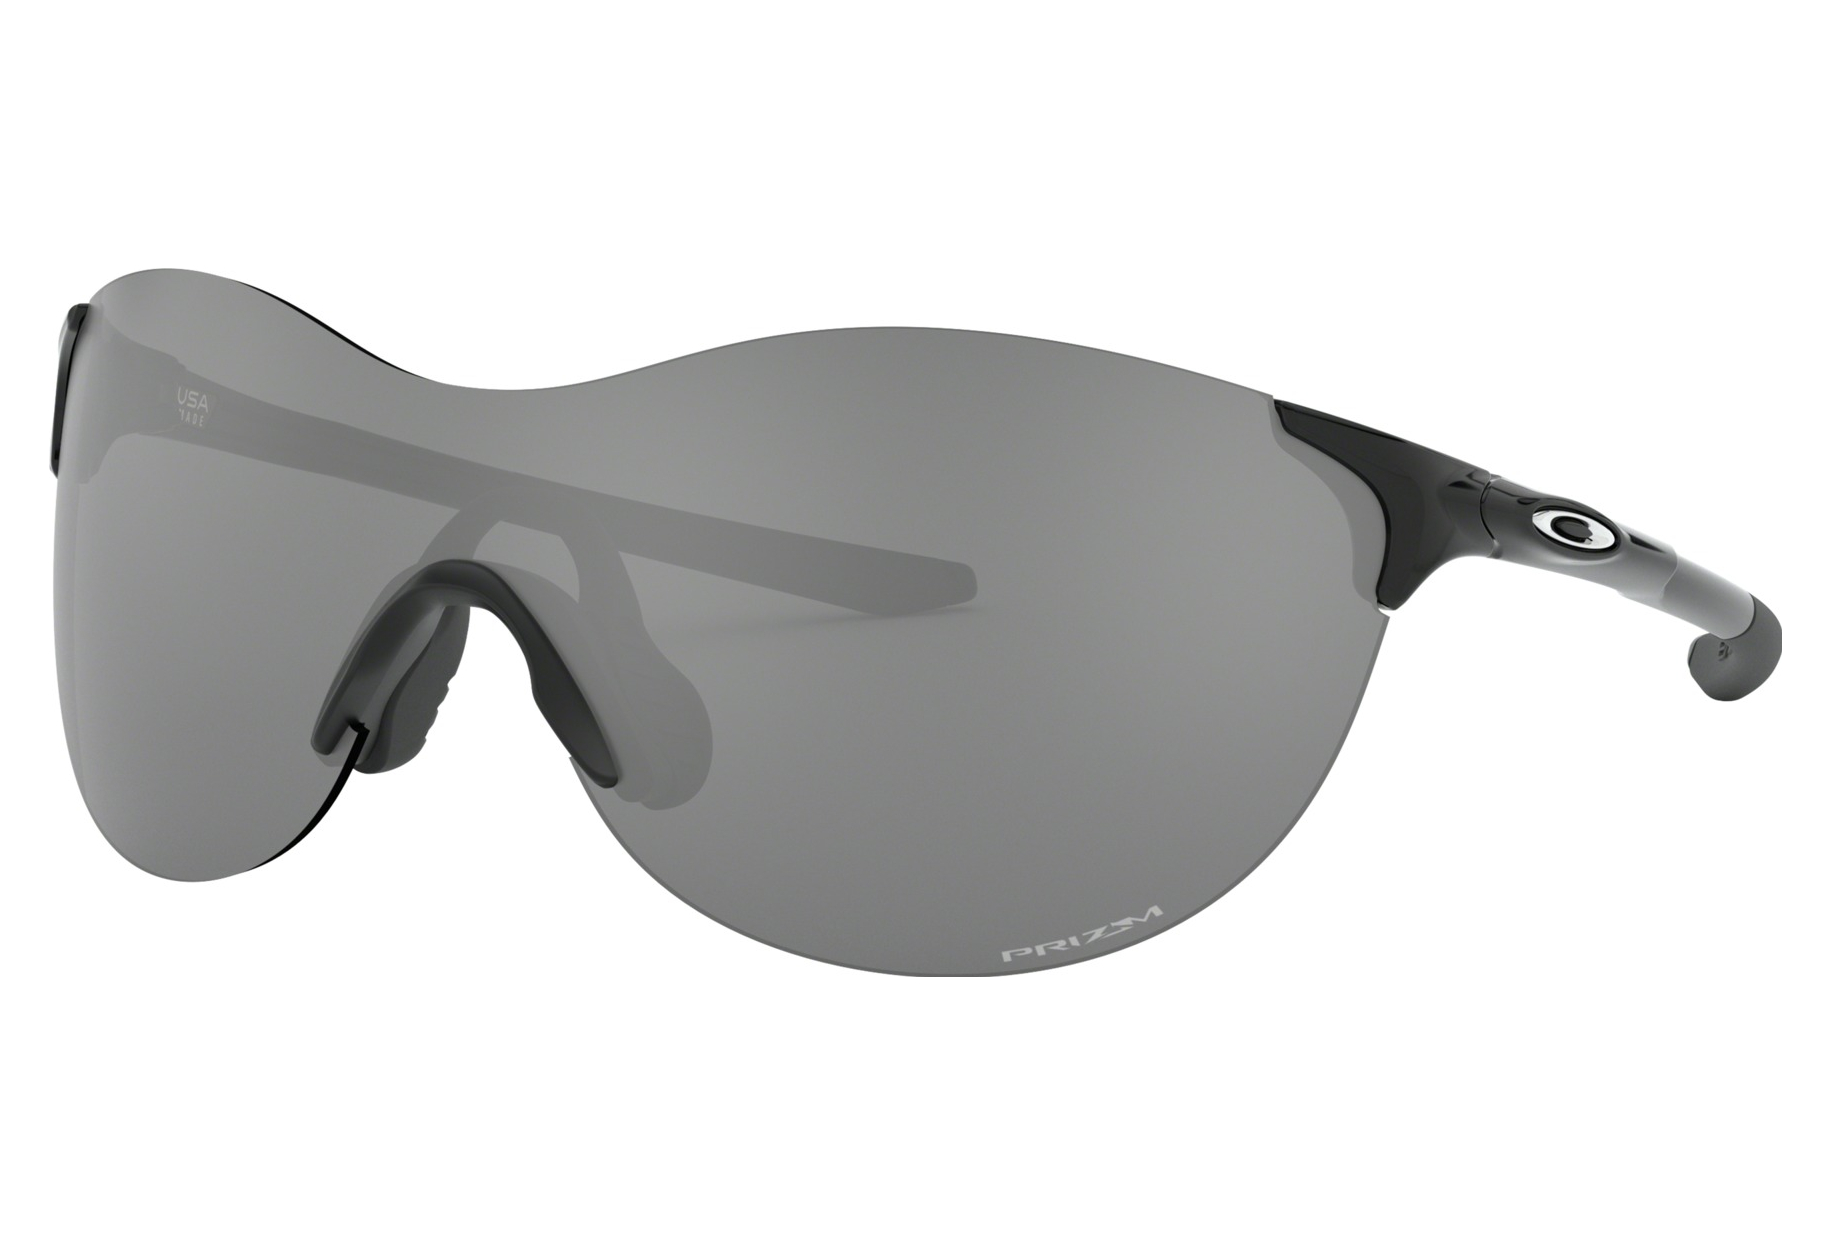 Evzero Black Sunglasses Prizm 0537 Ascend oo9453 Ref Oakley Polished vYgbf76y